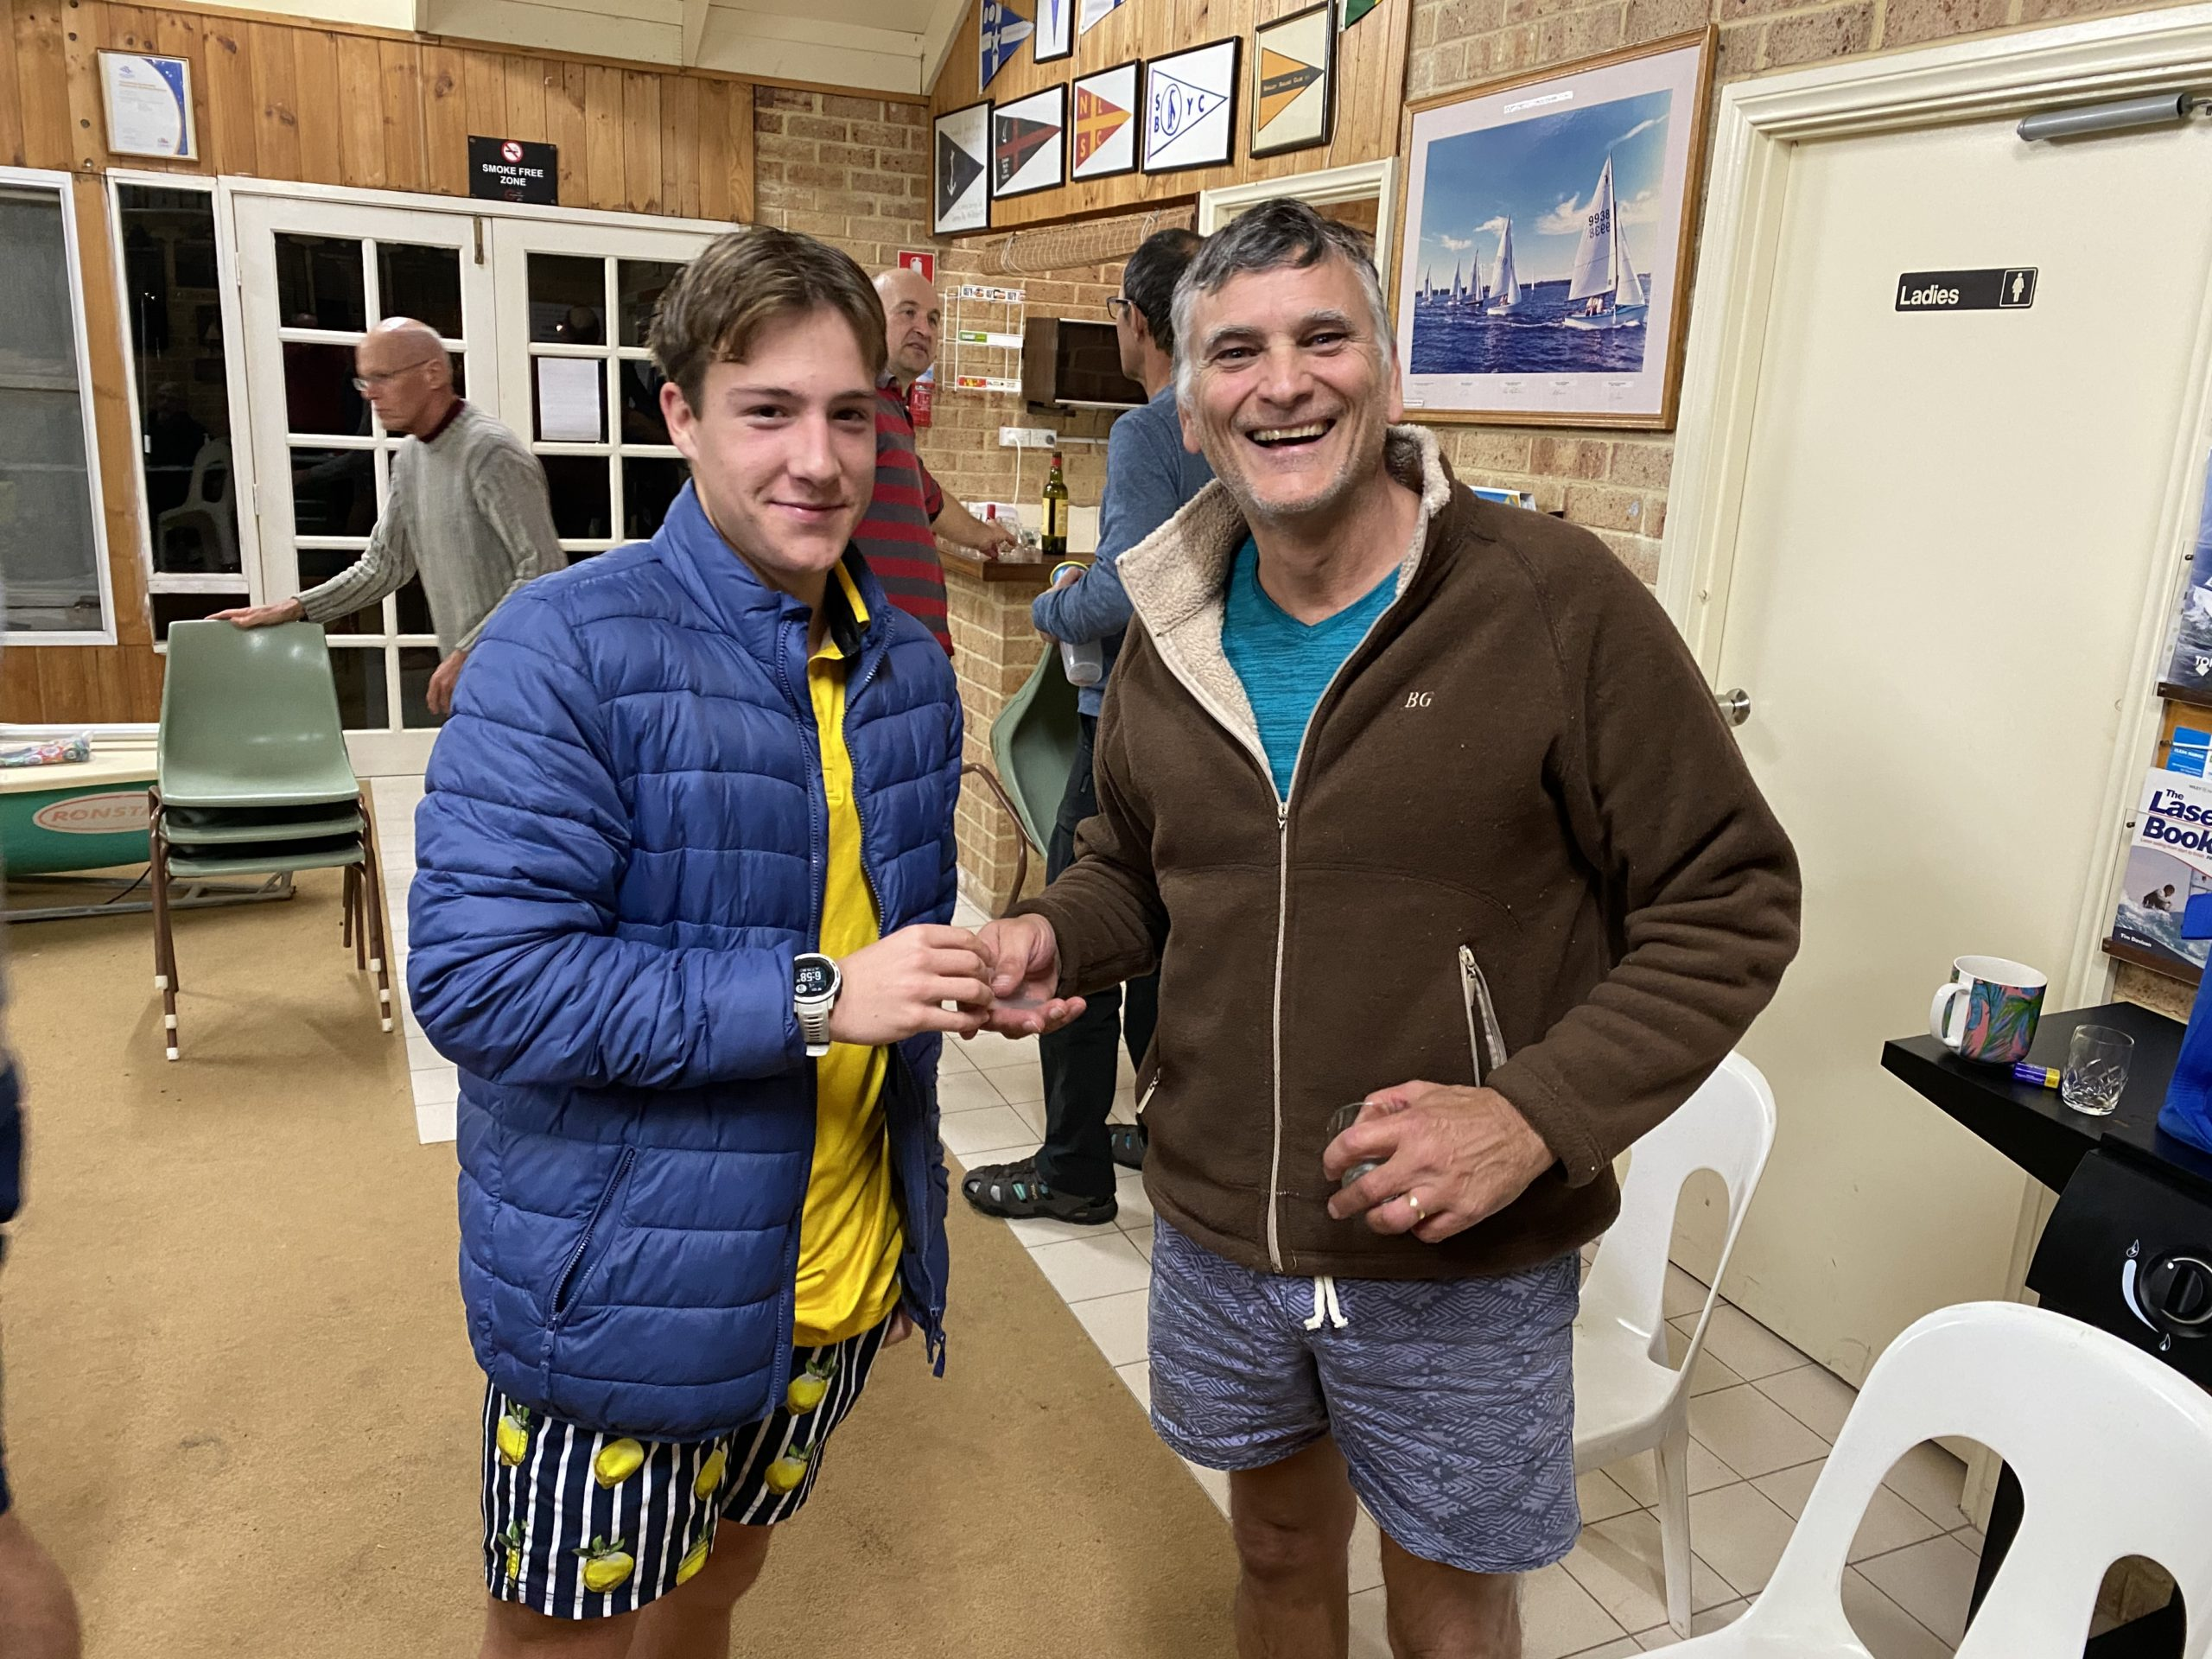 Tuesday 16th June 2020 : Tonight's photos shows club member Noah Boldy who also set the 4th ever fastest time on the course tonight presenting Peter Farrell with a movie voucher.